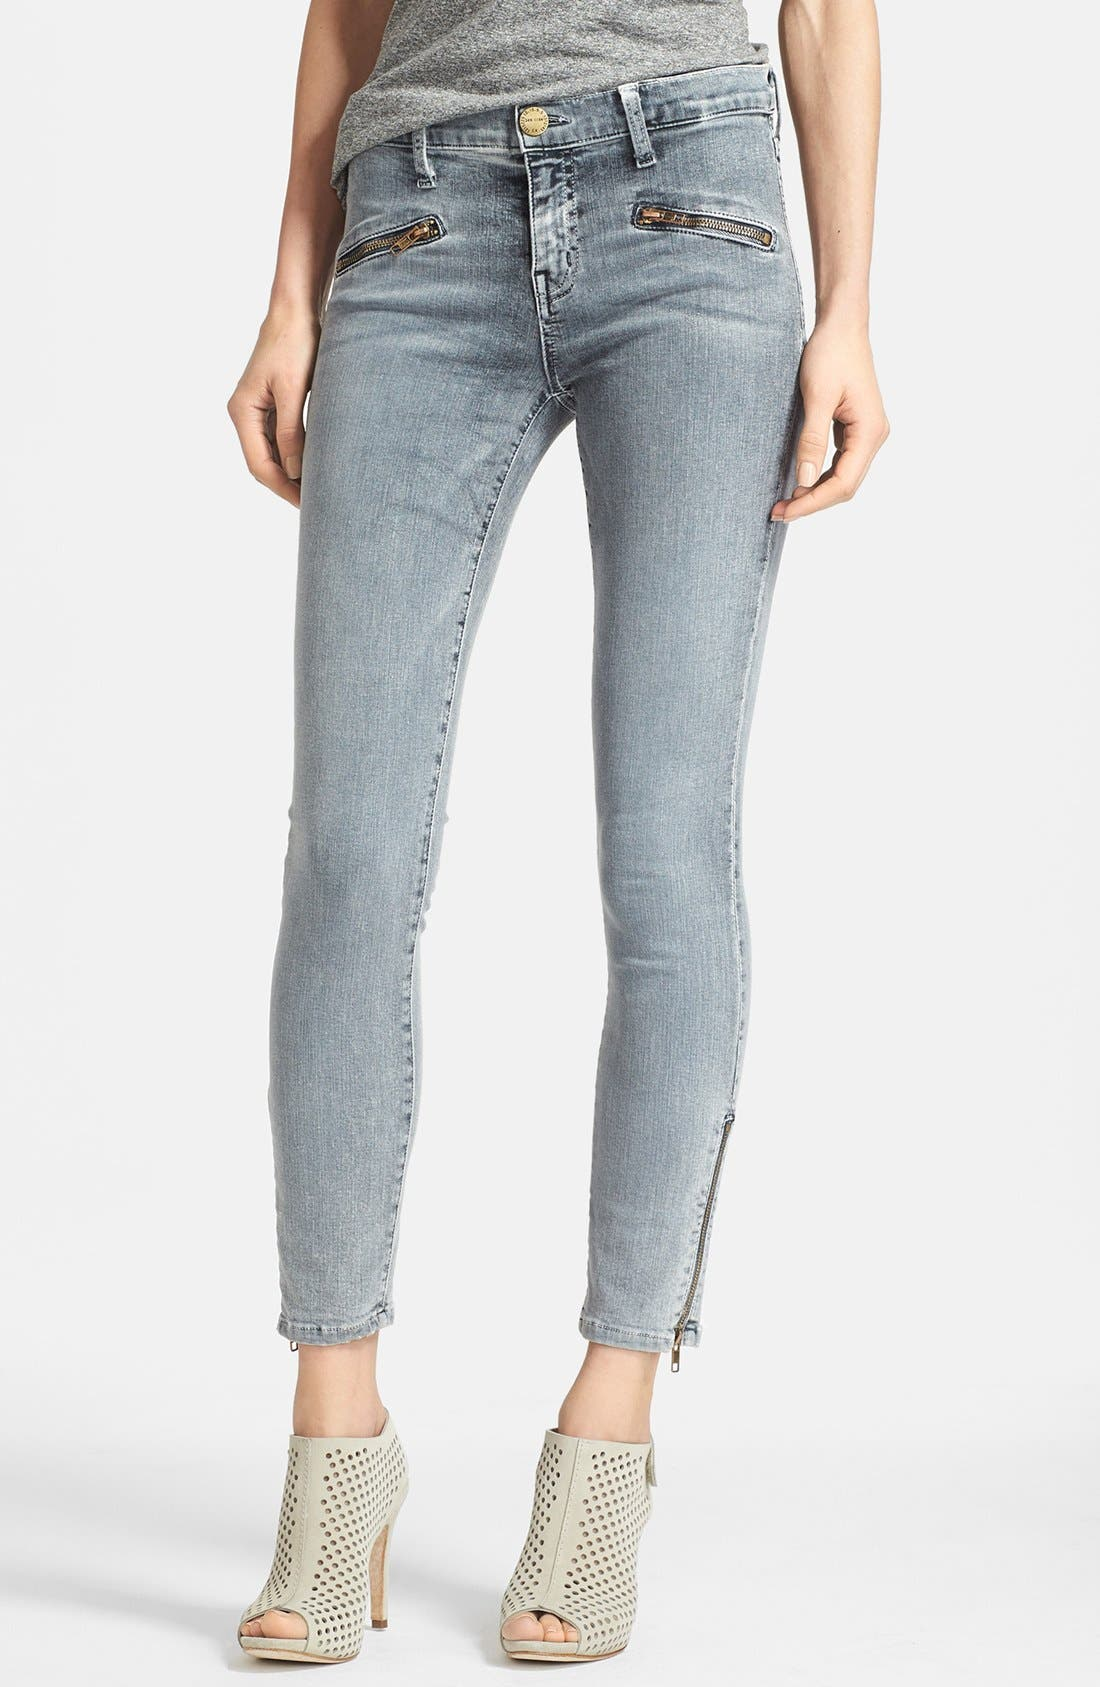 Alternate Image 1 Selected - Current/Elliott 'The Soho' Zip Stiletto Skinny Jeans (Bleach Out Navy)